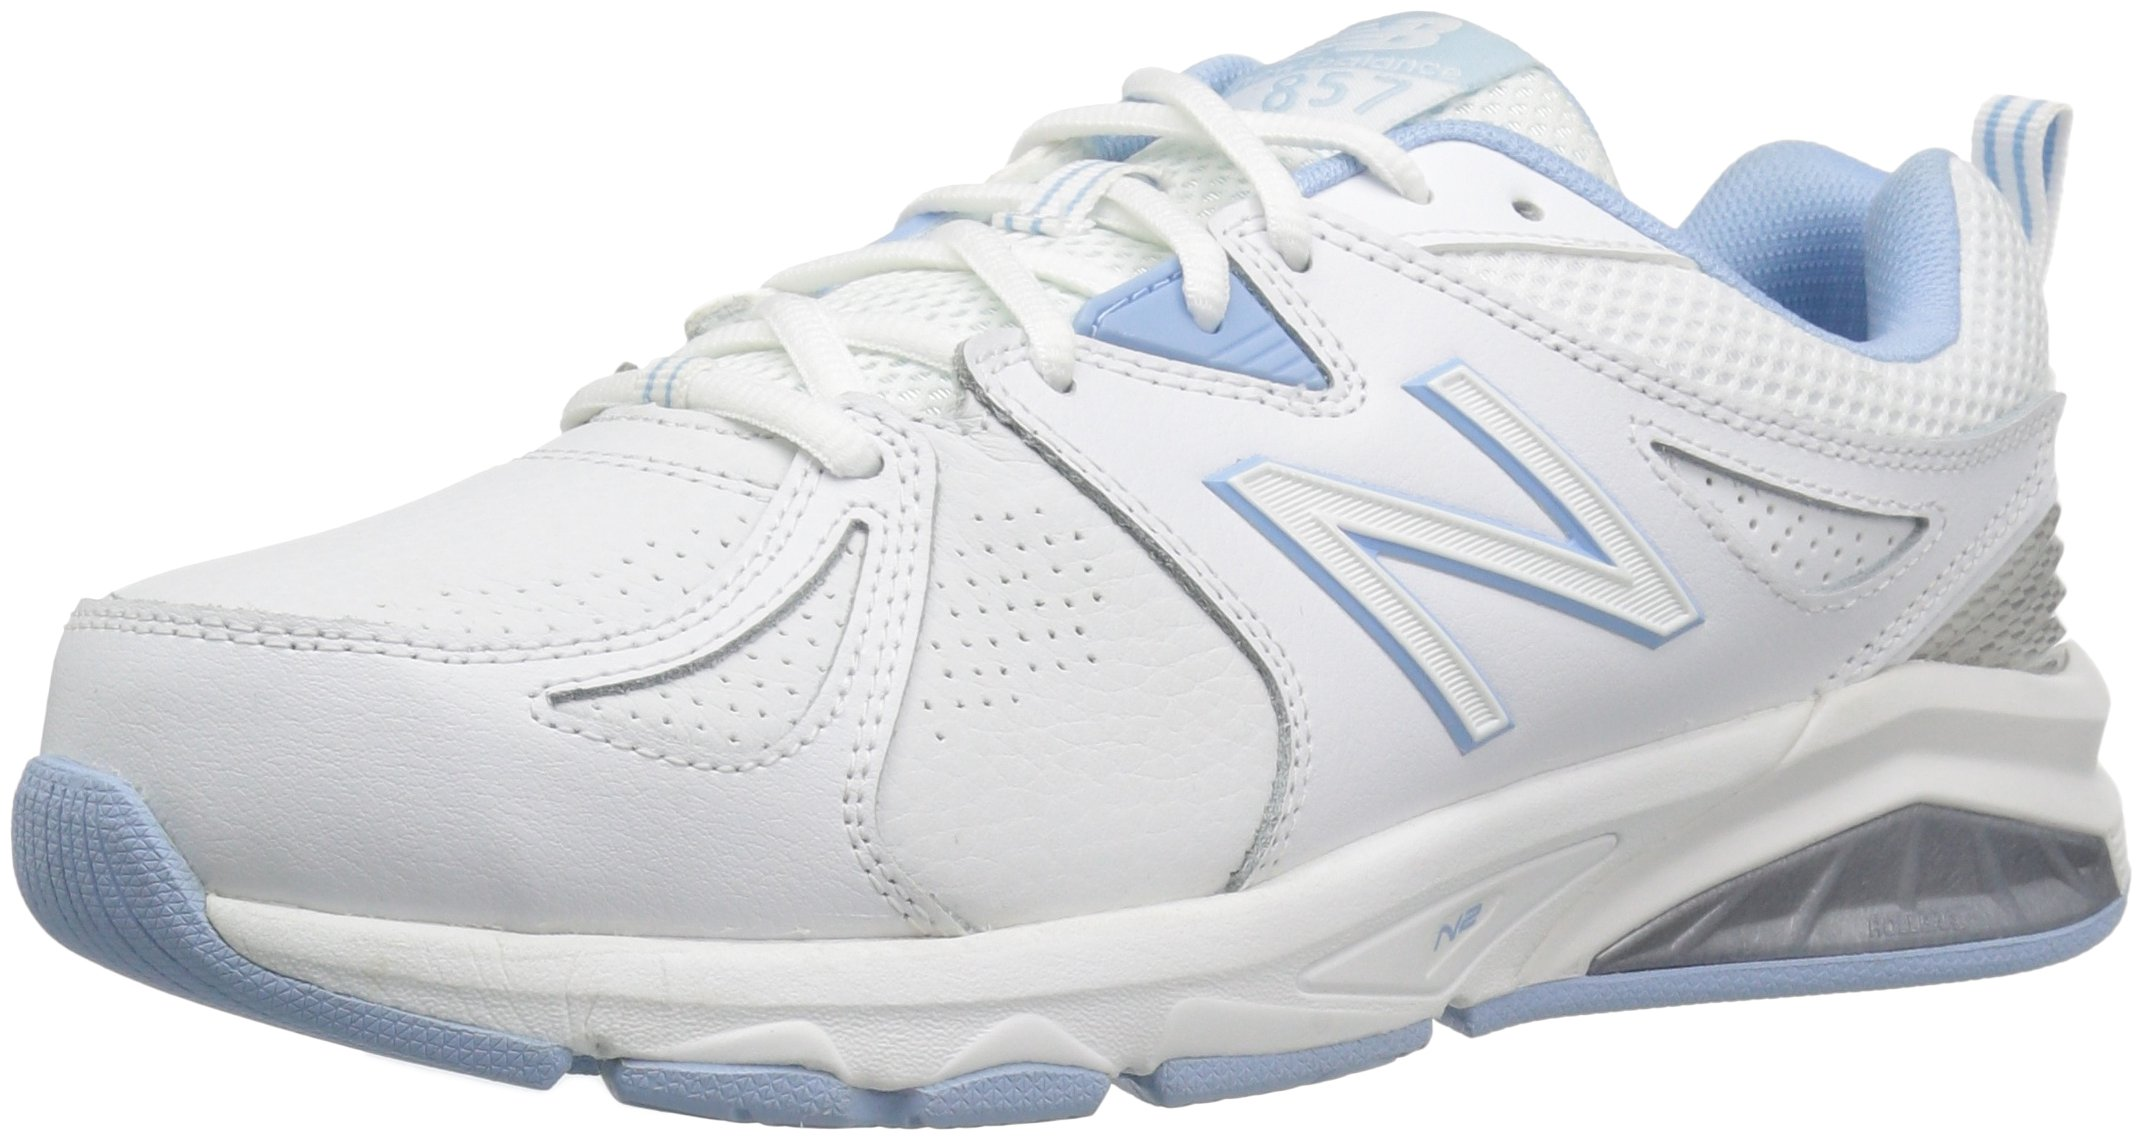 New Balance Women's wx857v2 Casual Comfort Training Shoe, White/Blue, 9.5 B US by New Balance